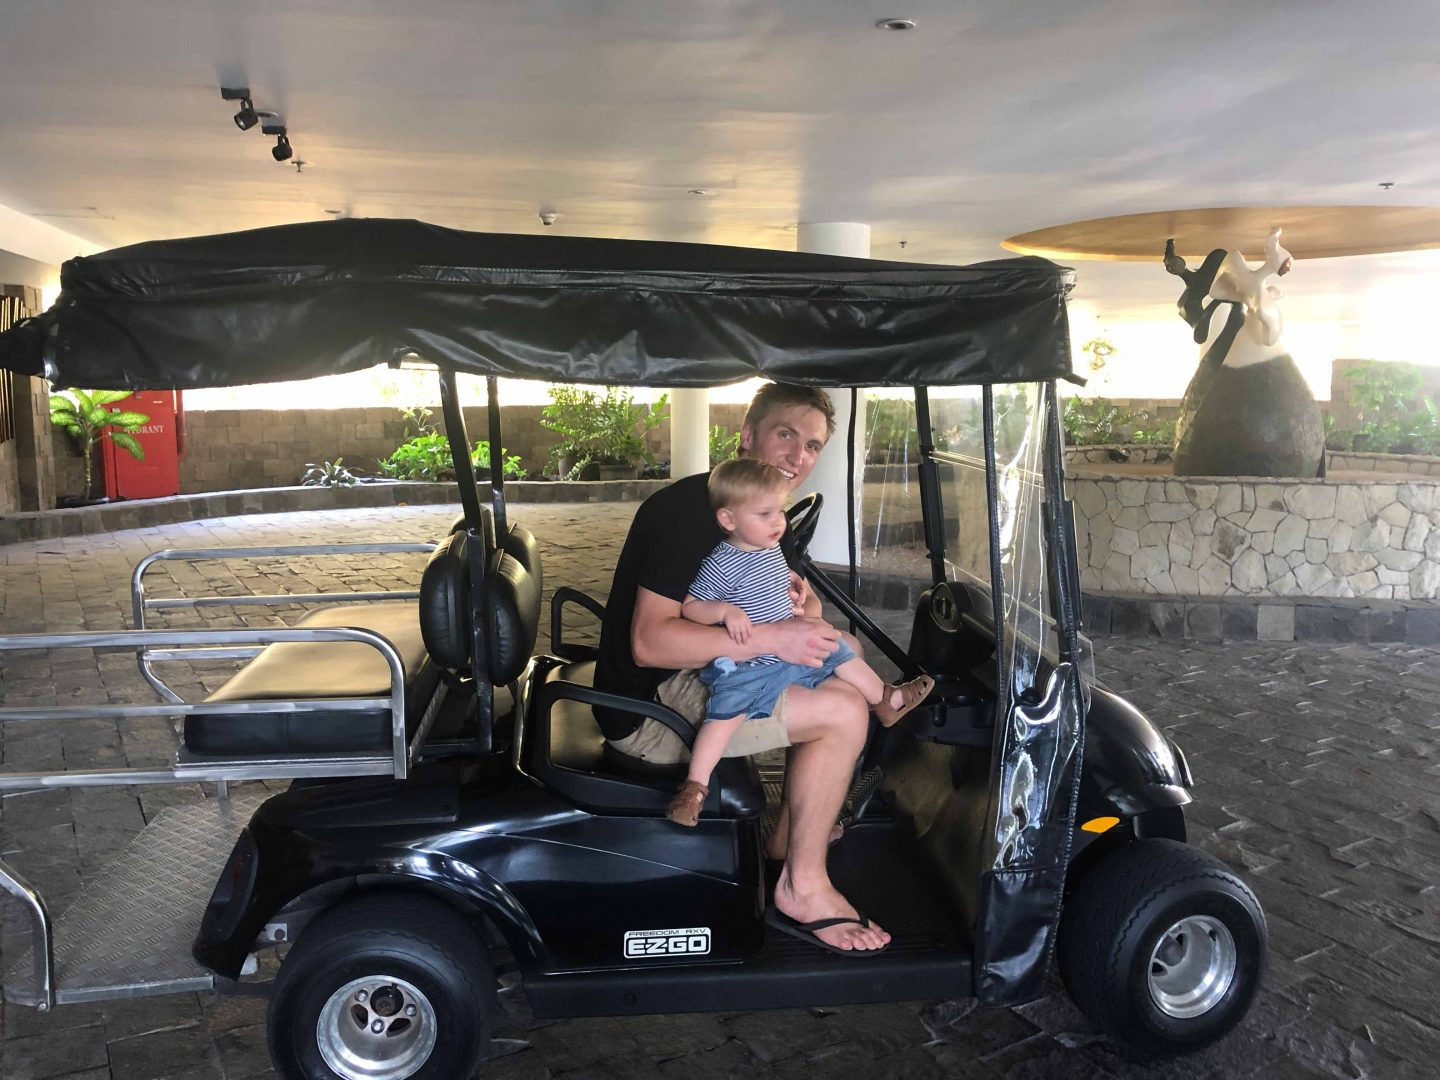 Transport Golf cart - Bali with a toddler - Live life and roam